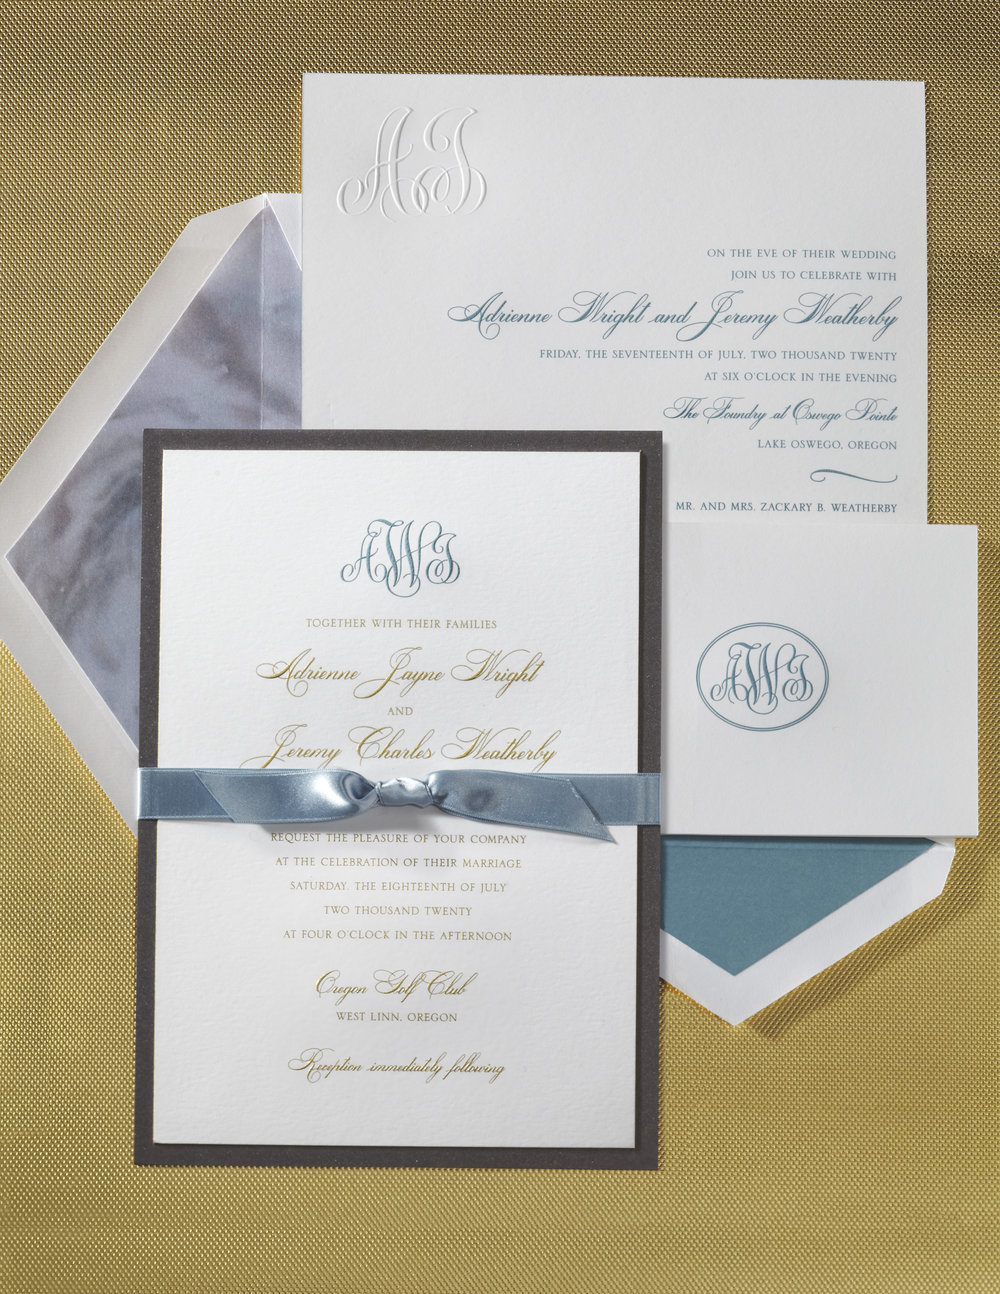 duette gifts and paper | invitations 4 .jpg